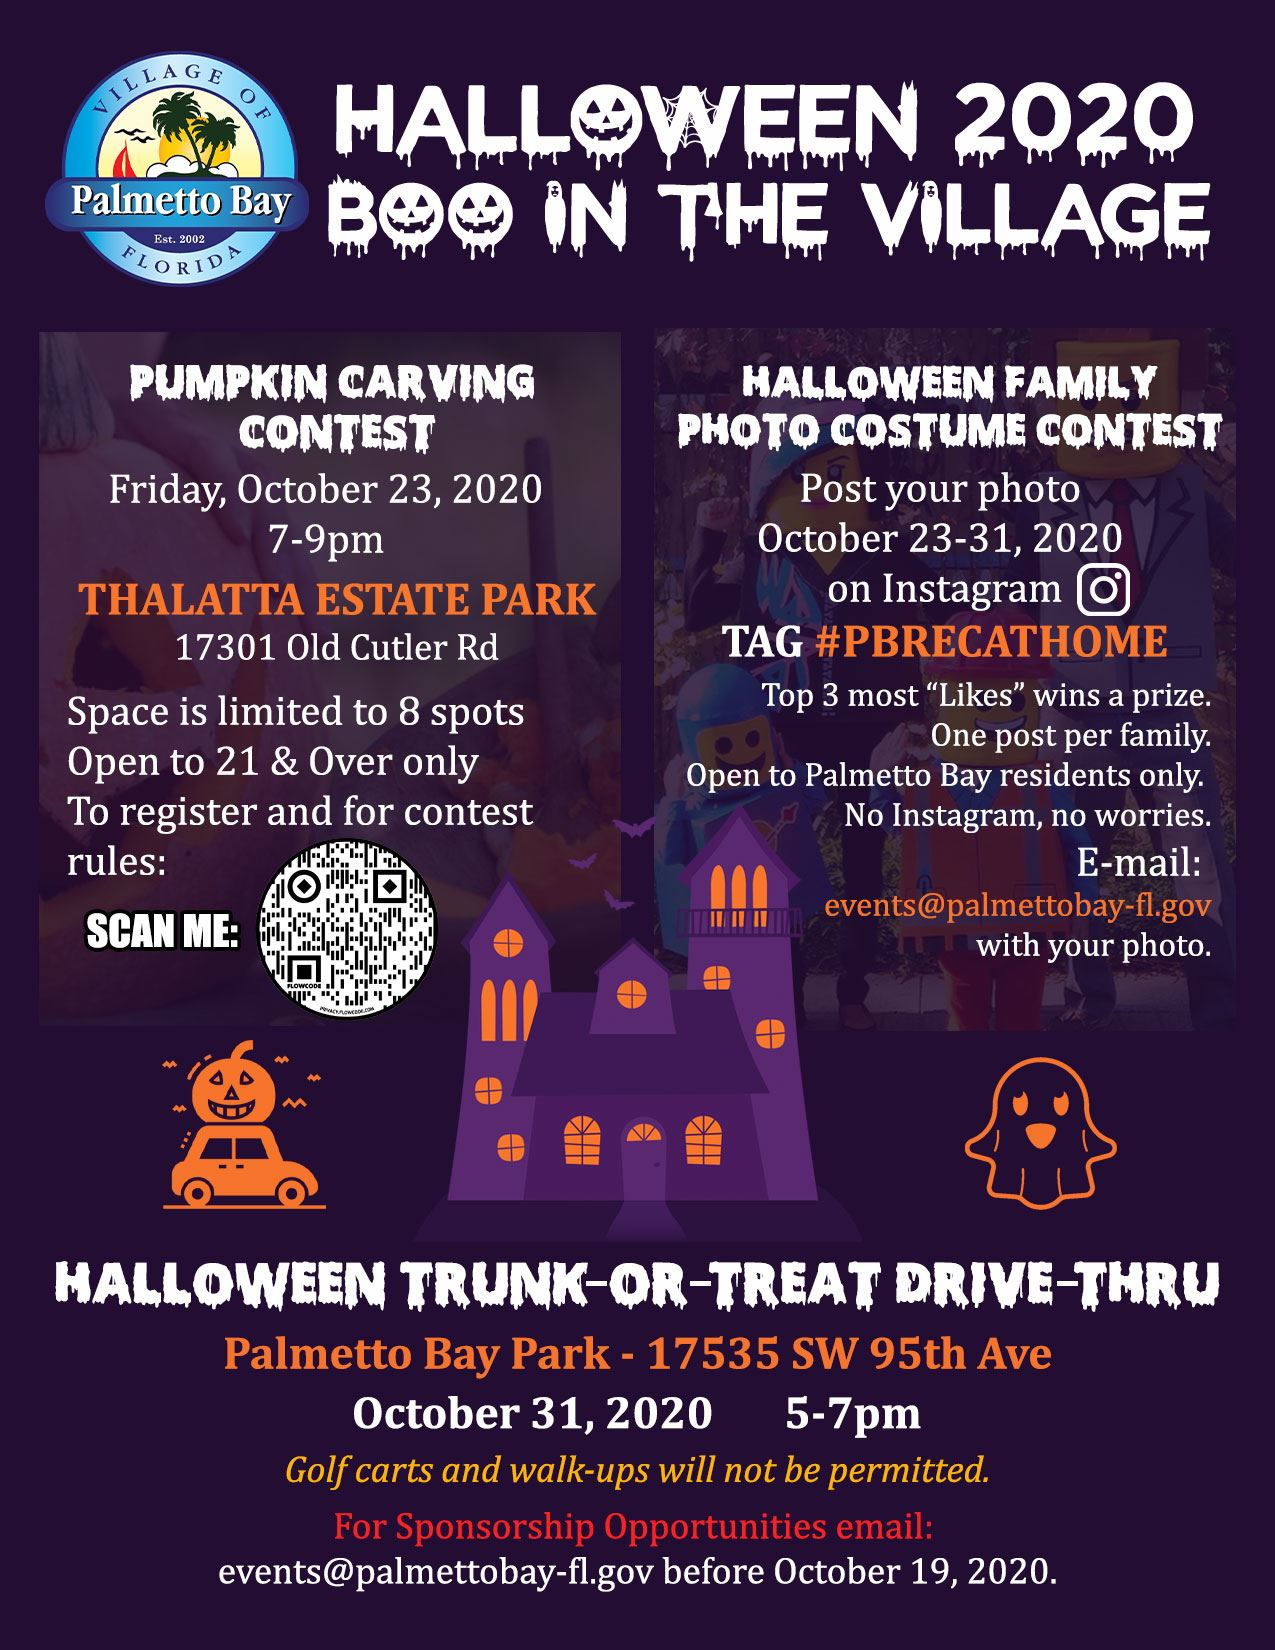 Halloween-Series-of-Events-2020